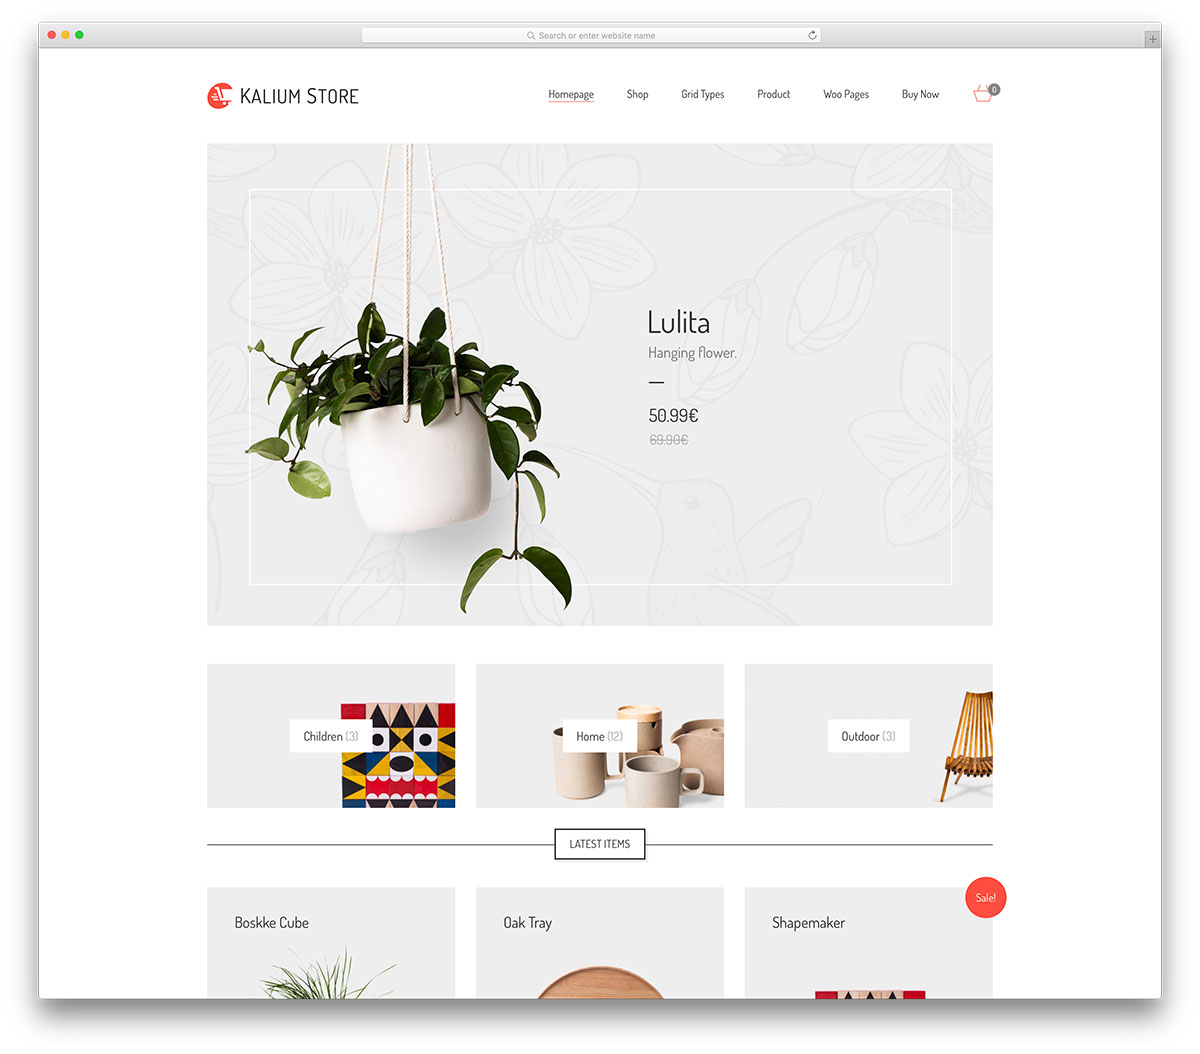 kalium-simple-ecommerce-website-template